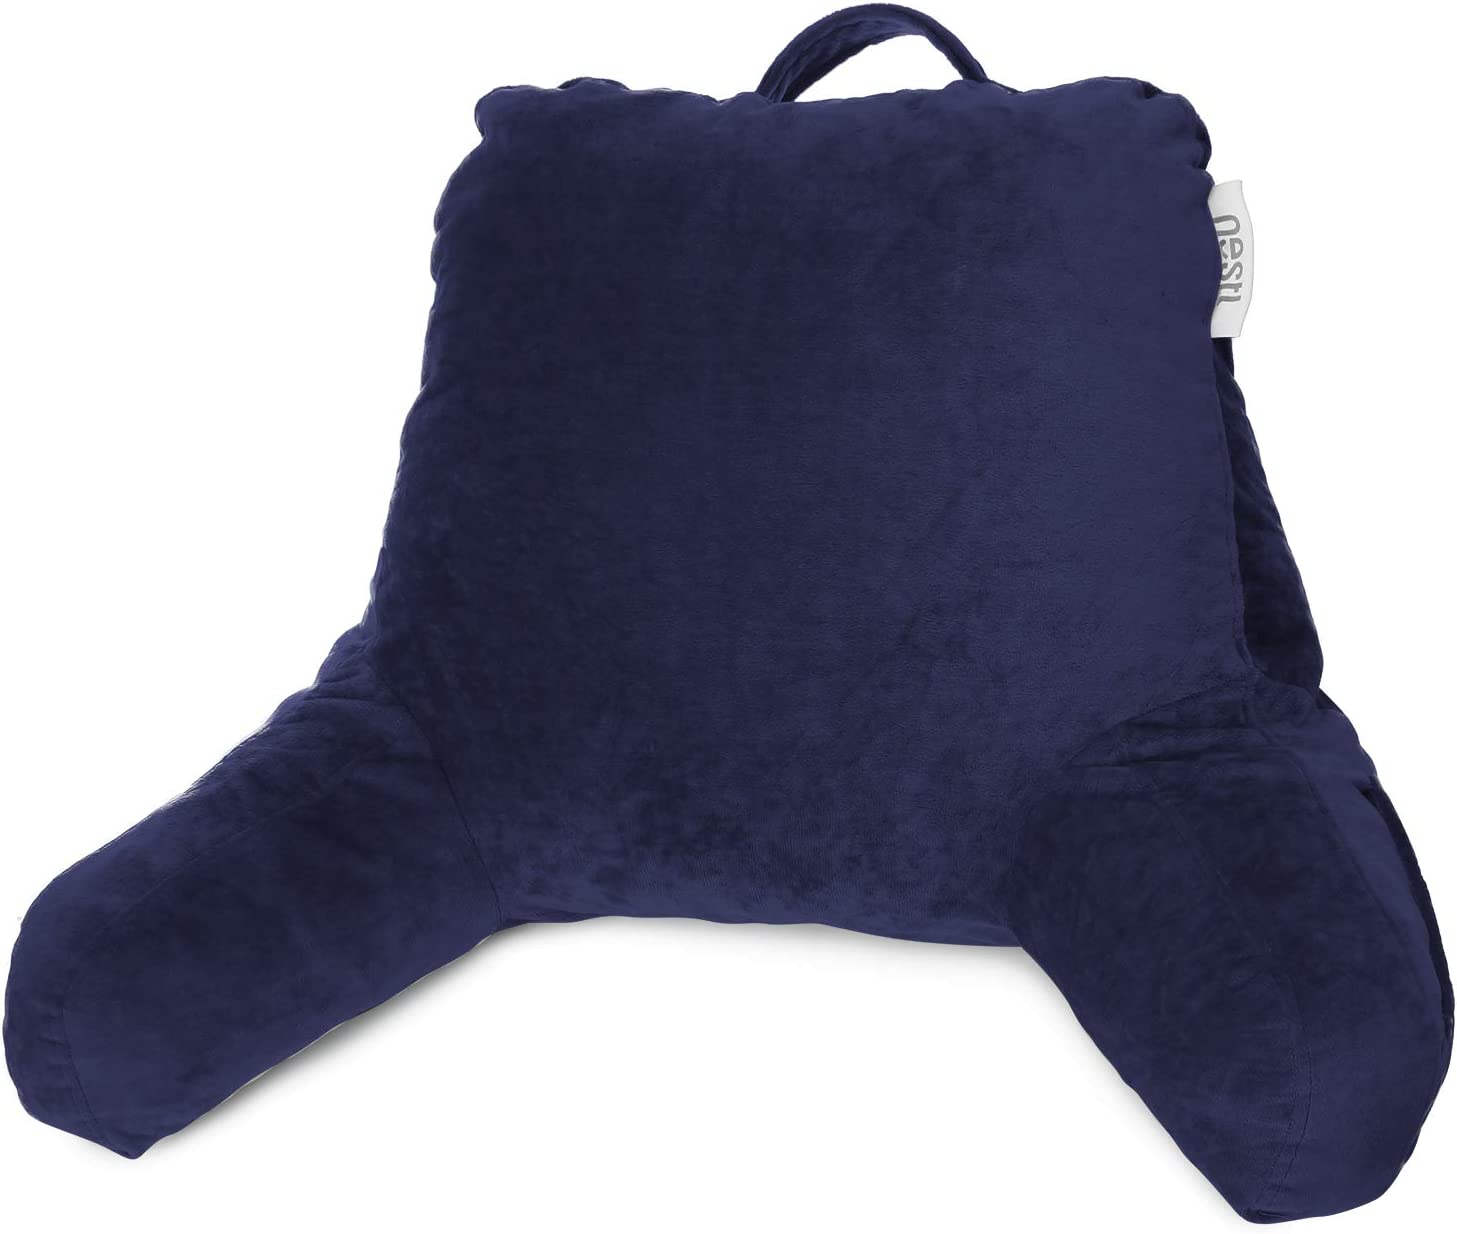 Clara Clark Bed Rest Reading Pillow with Arms and Pockets for for Kids Teens & Adults - Premium Shredded Memory Foam, Medium, Navy Blue